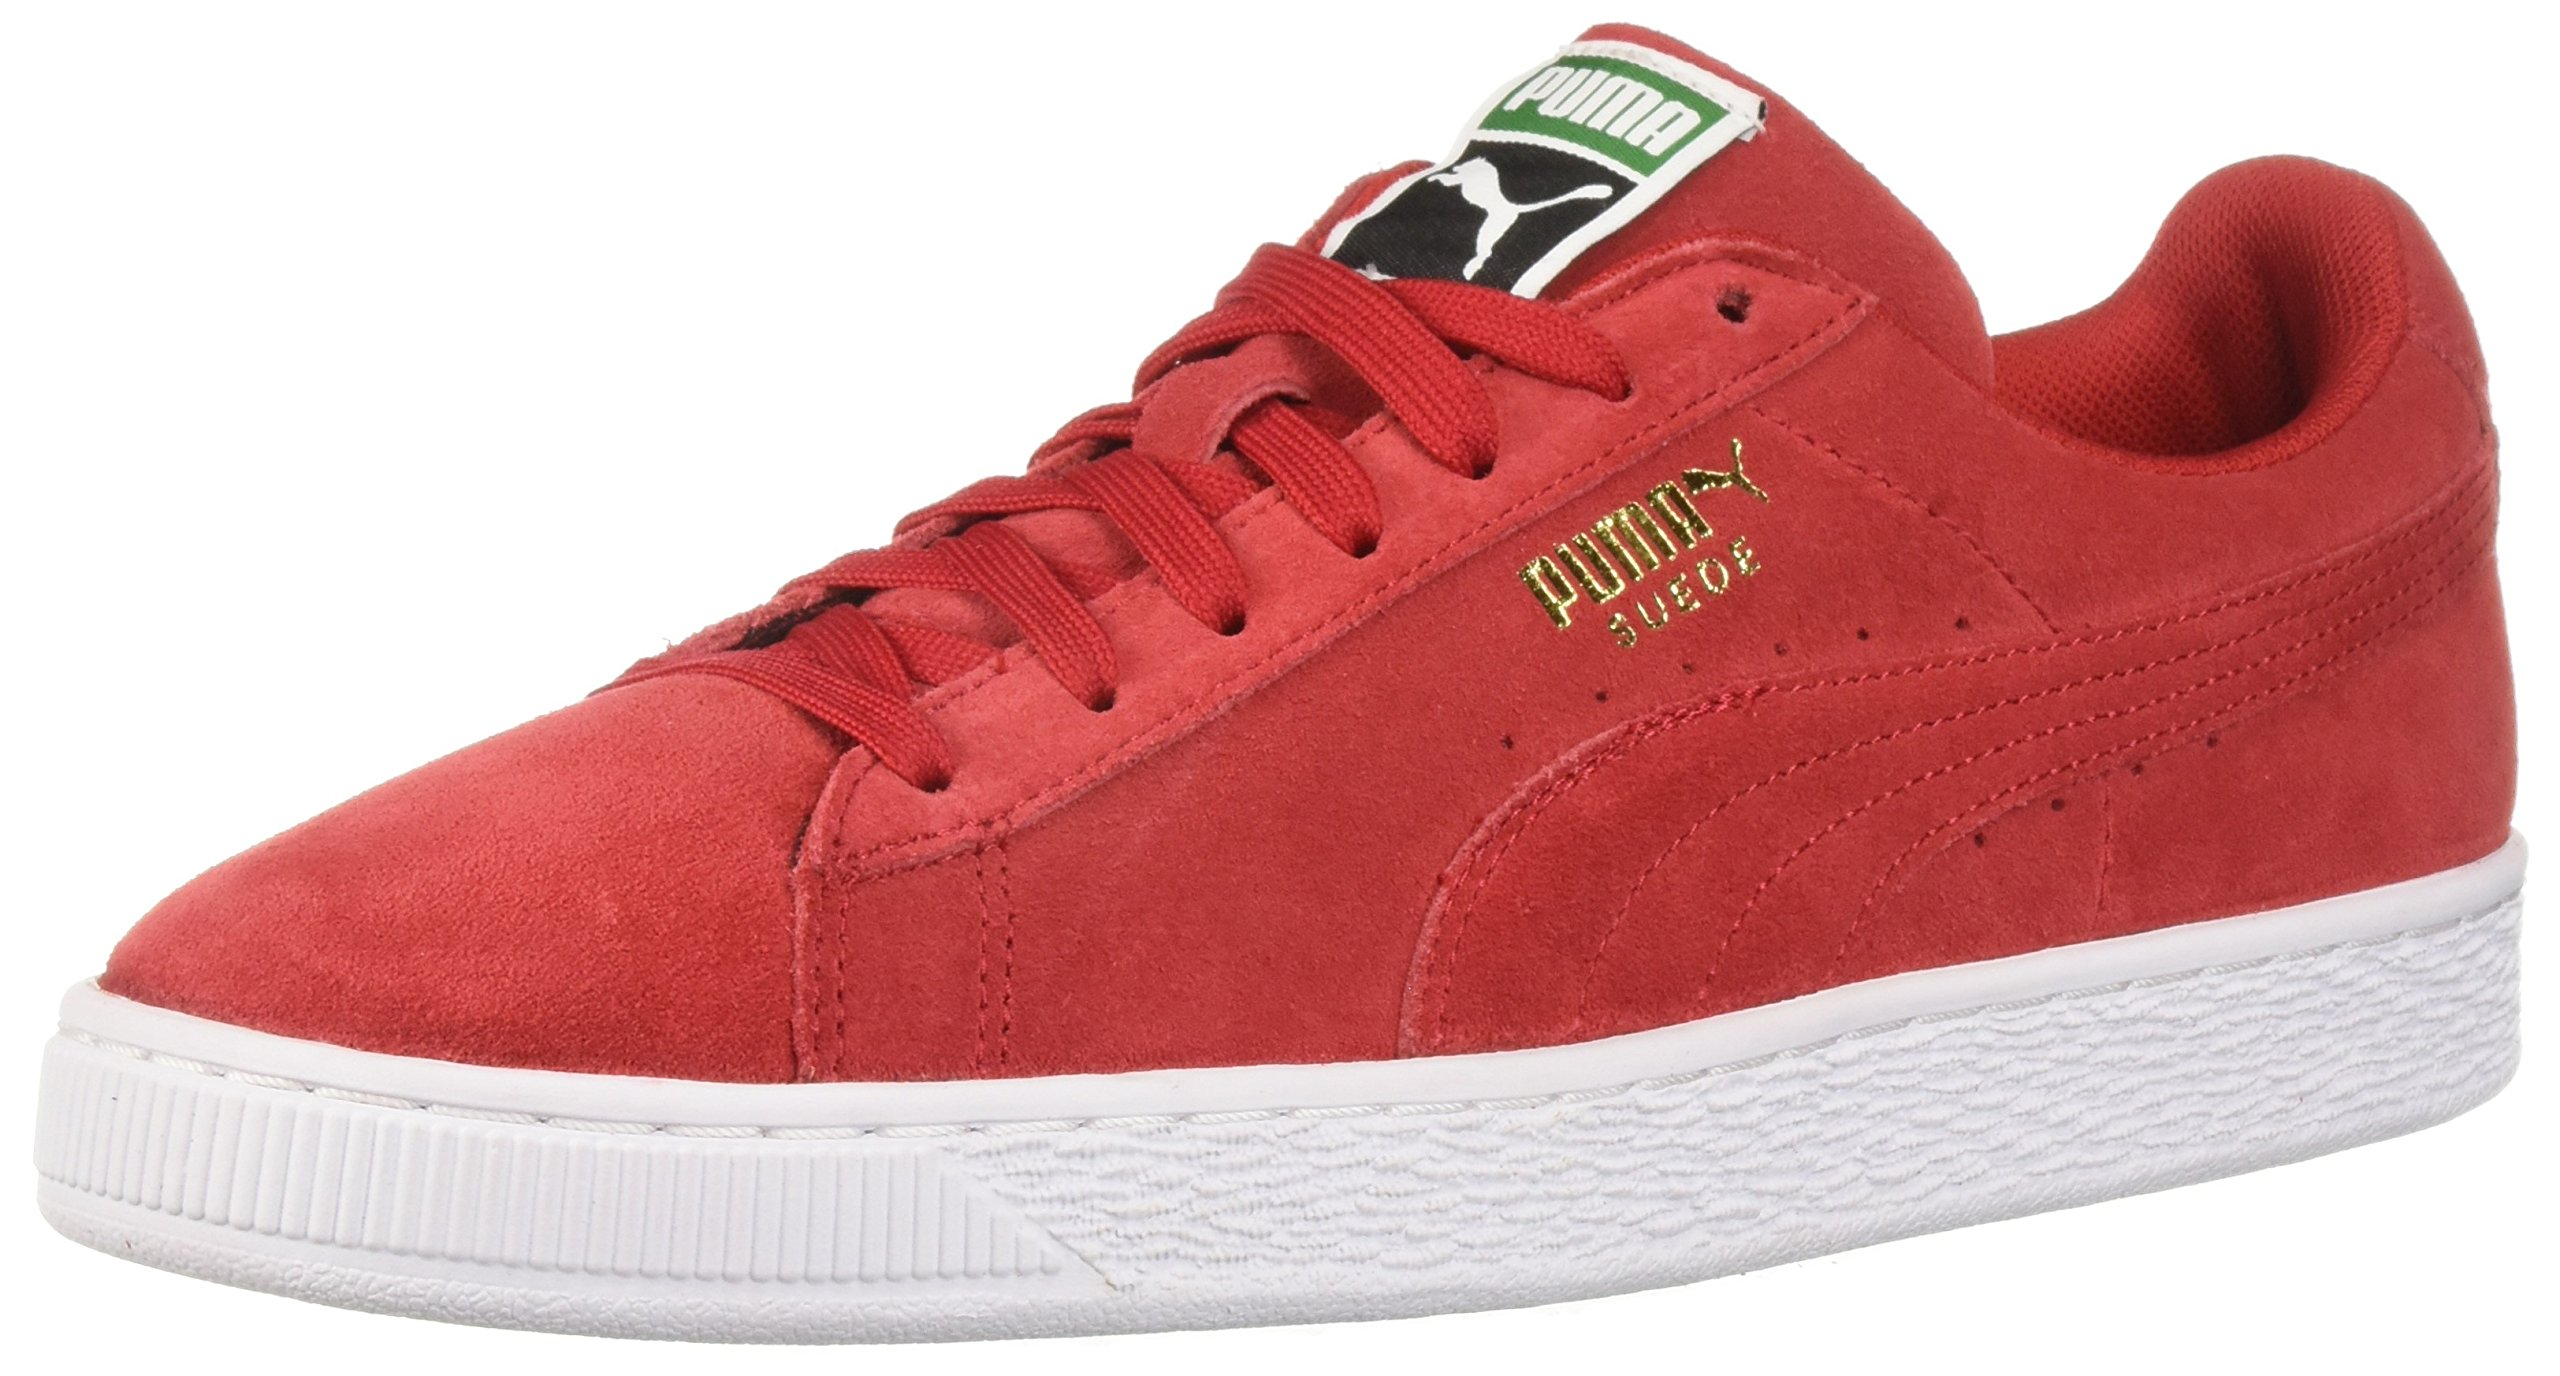 PUMA Men's Suede Classic + Sneaker, High Risk Red, 10.5 M US